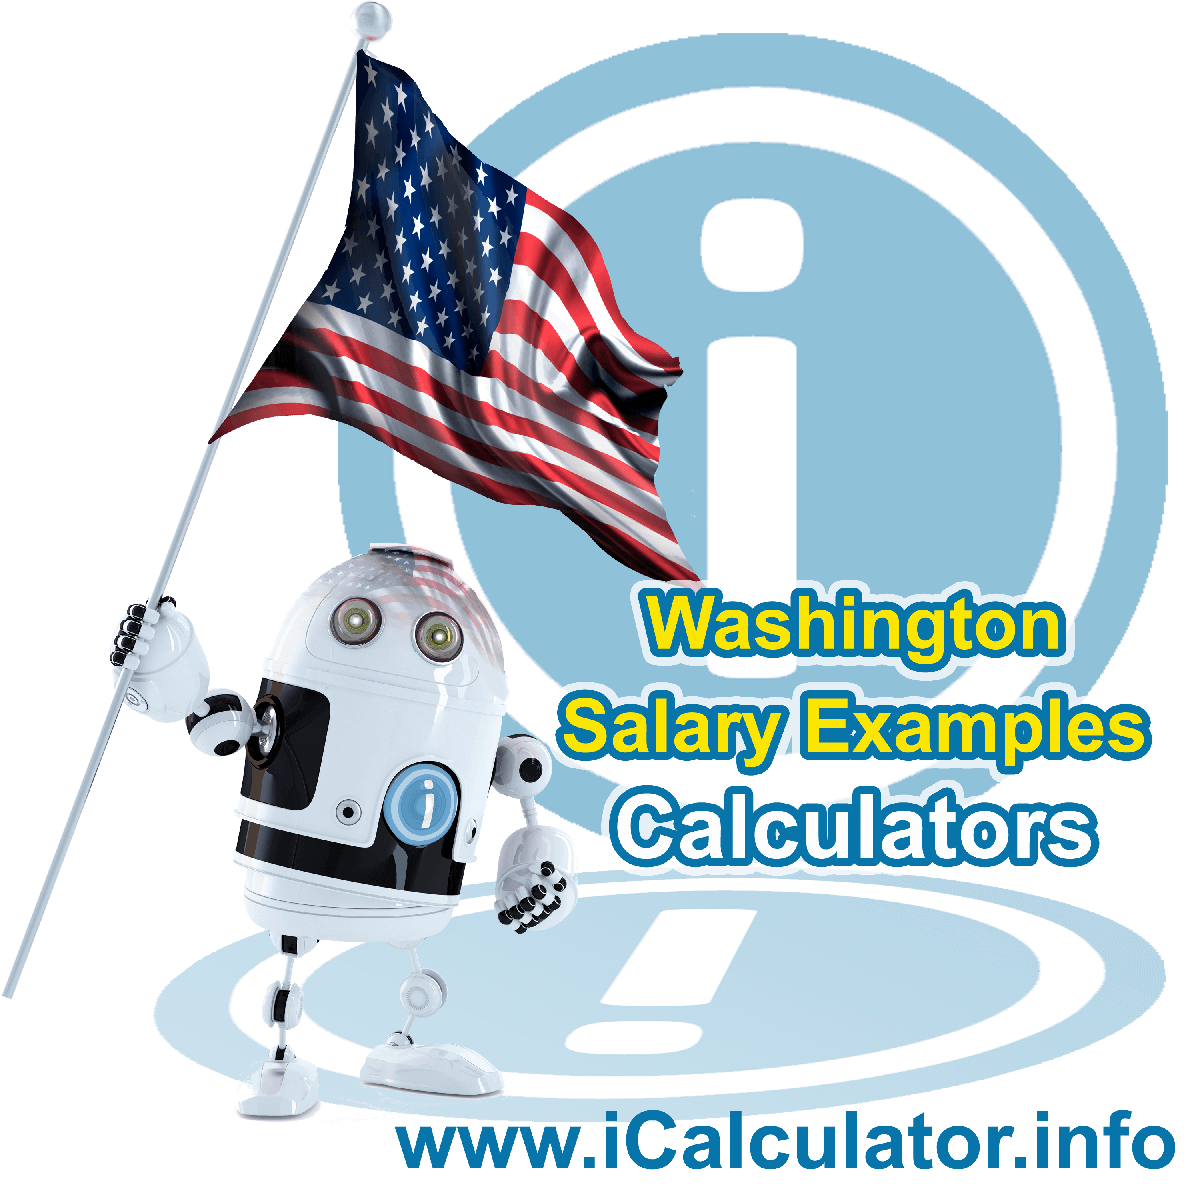 Washington Salary Example for $25,000.00 in 2020 | iCalculator | $25,000.00 salary example for employee and employer paying Washington State tincome taxes. Detailed salary after tax calculation including Washington State Tax, Federal State Tax, Medicare Deductions, Social Security, Capital Gains and other income tax and salary deductions complete with supporting Washington state tax tables